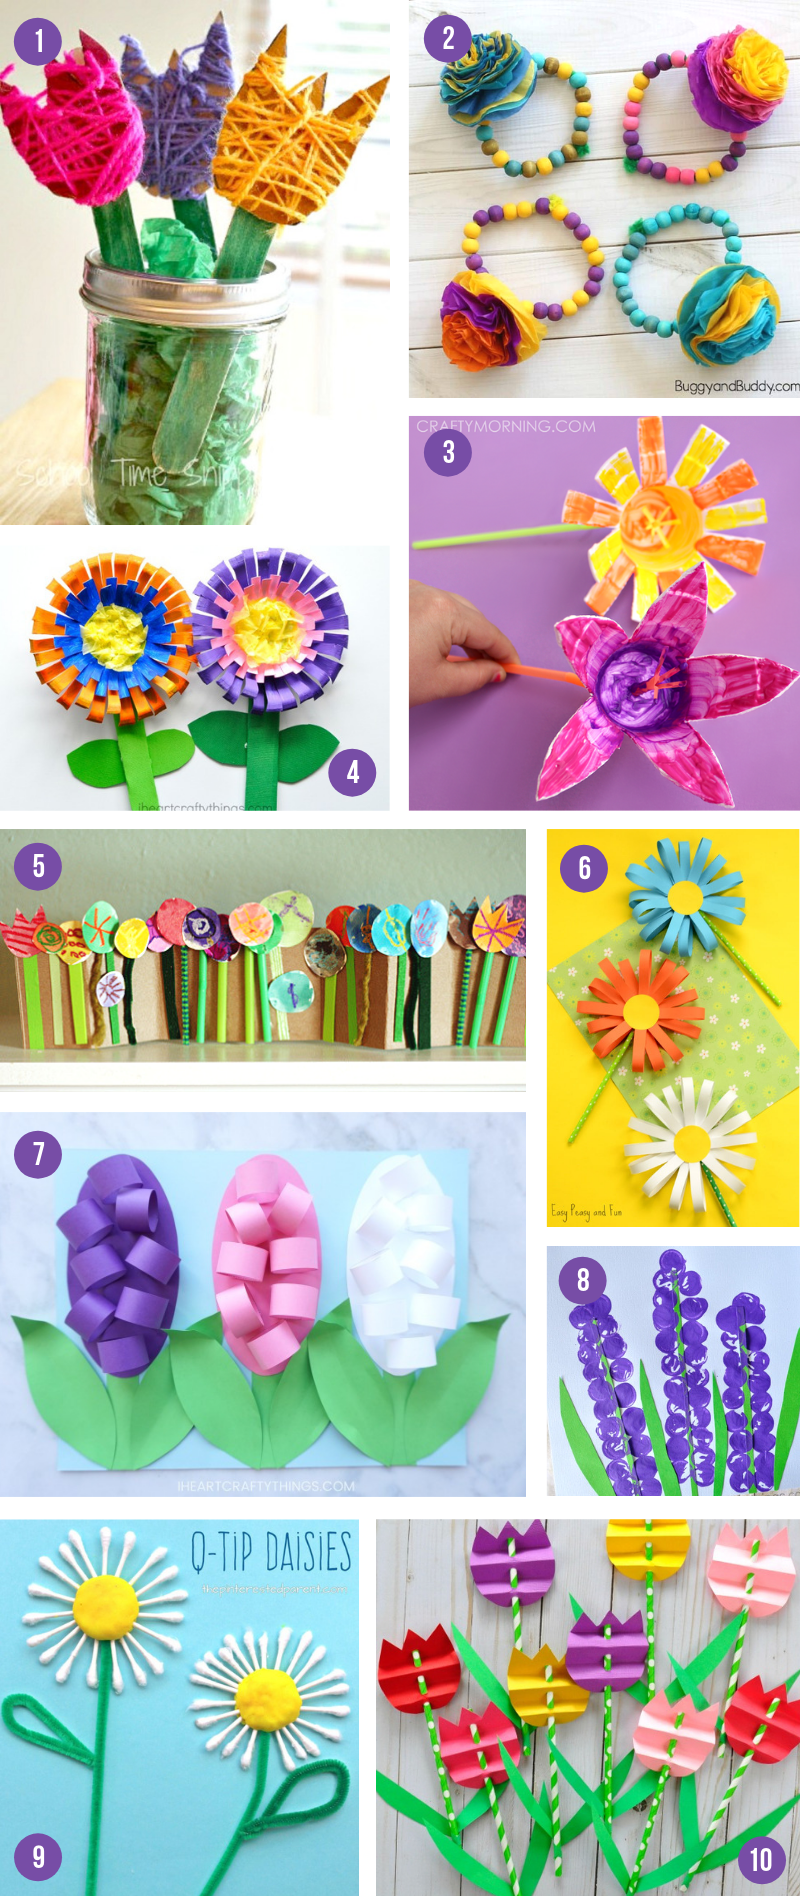 The Epic Collection Of Spring Crafts For Kids - All The Best Art Projects & Activities To Celebrate The Season -   19 simple crafts kindergarten ideas